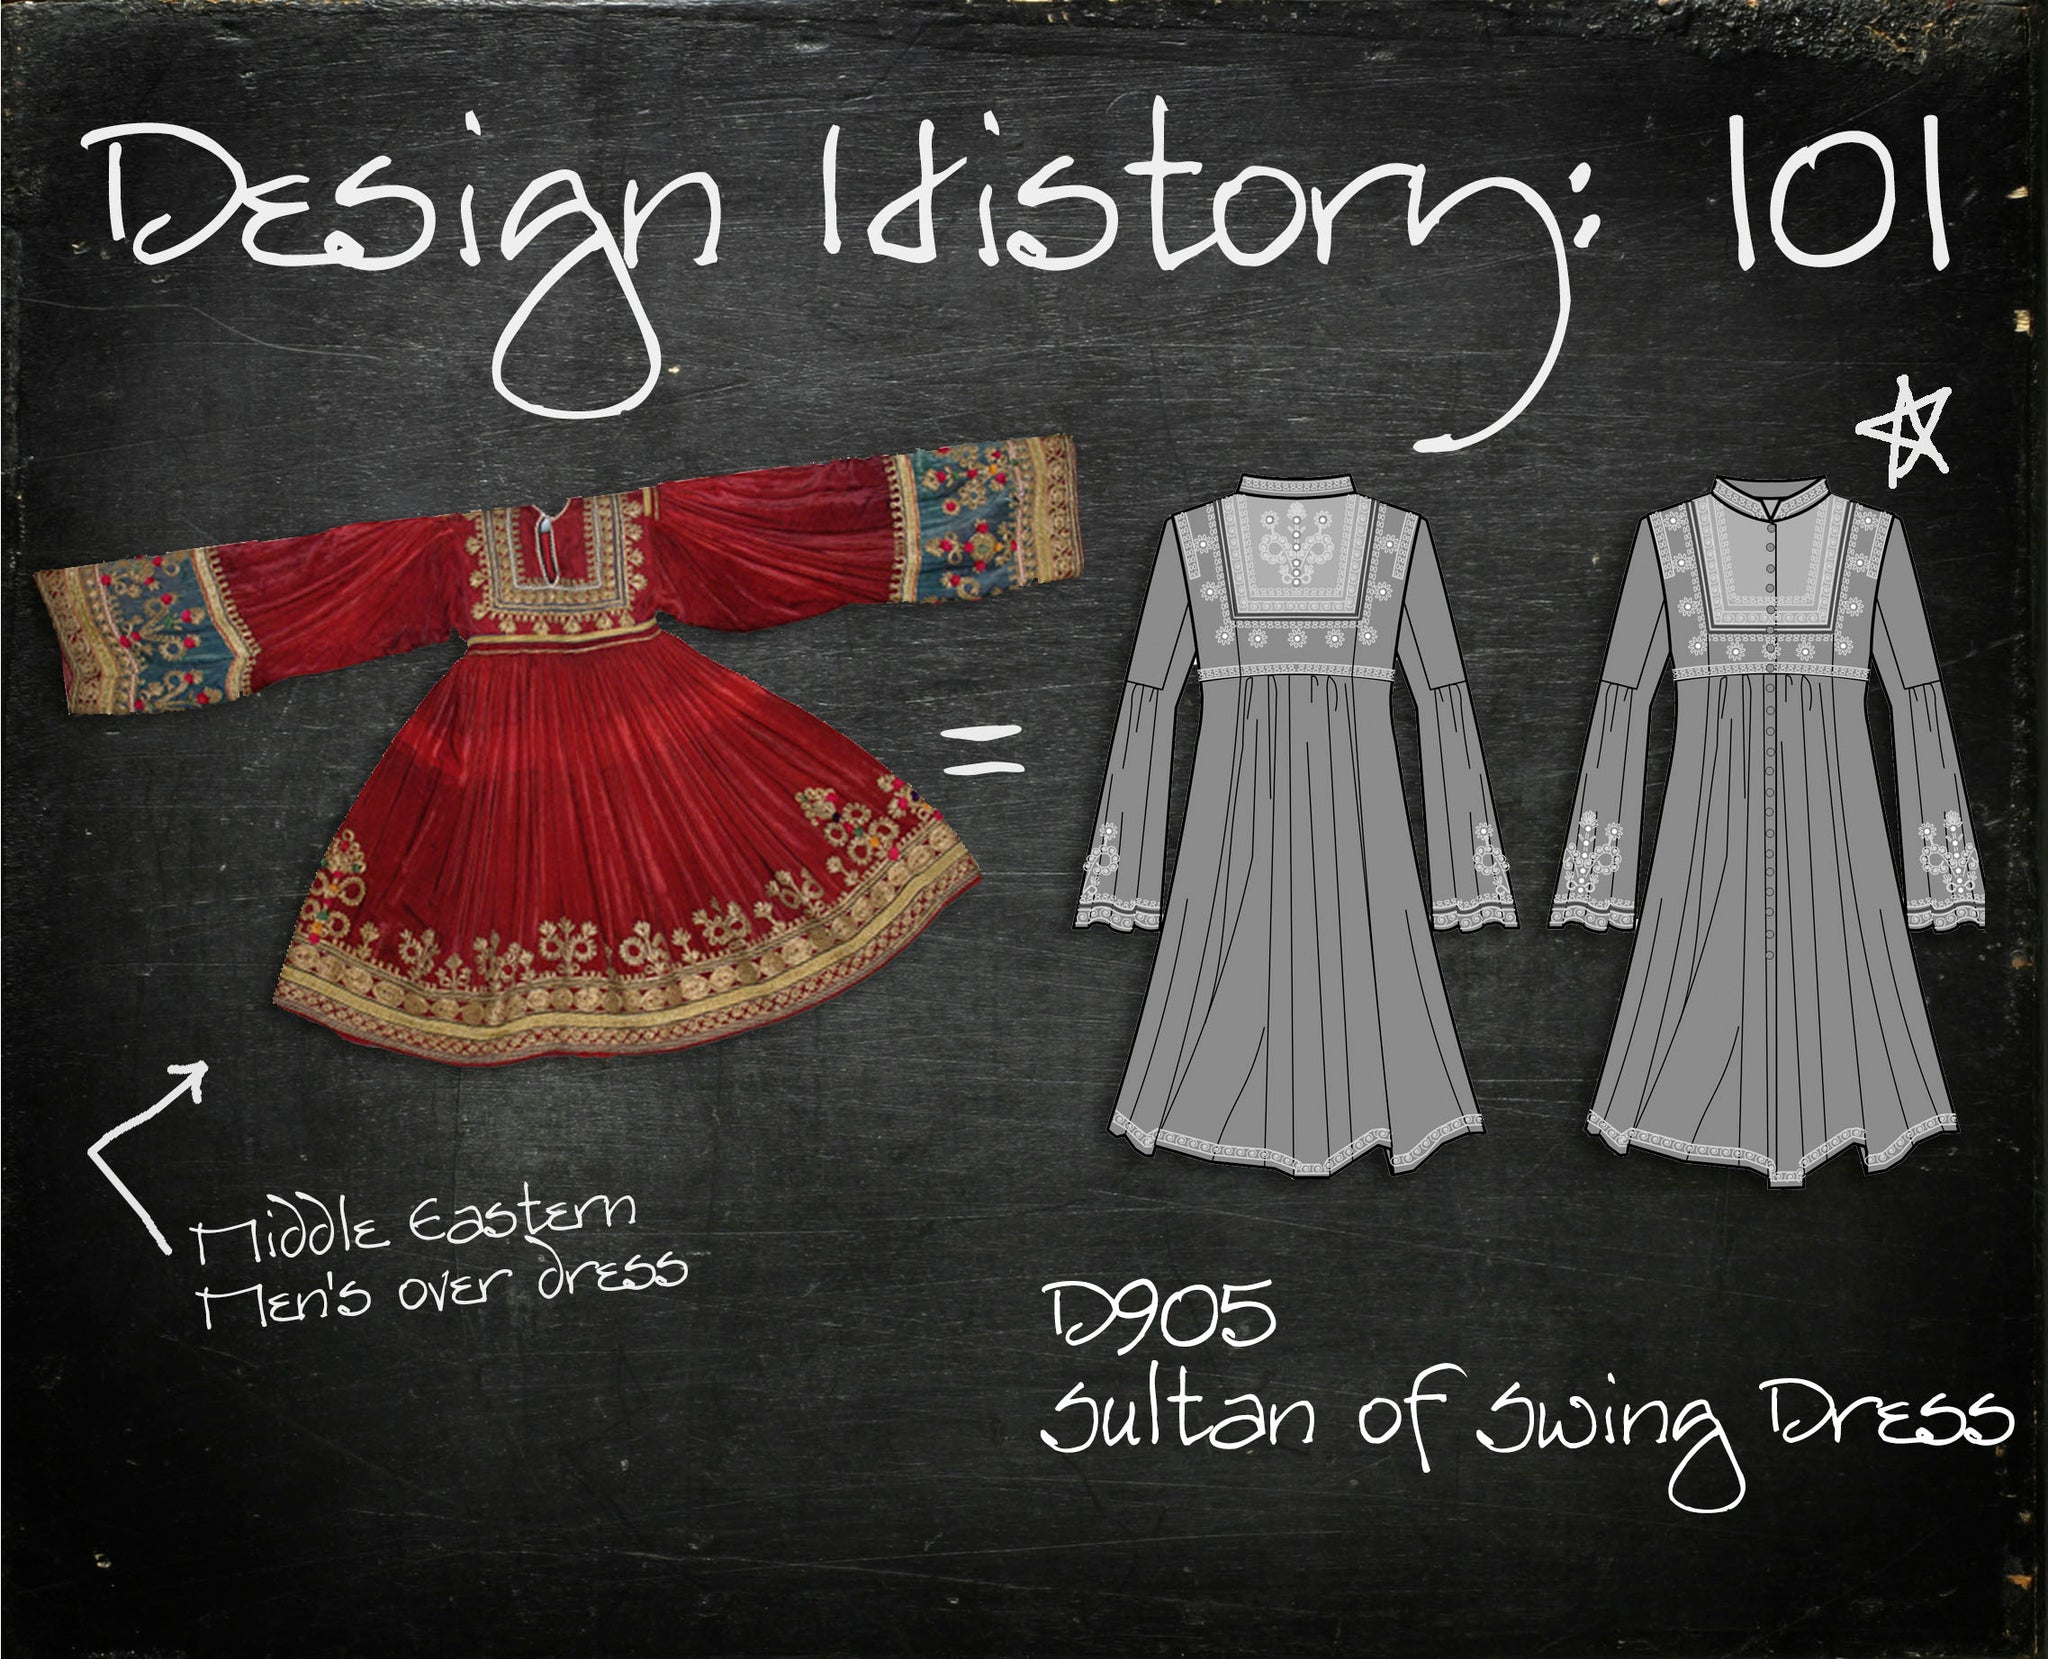 Design History 101: Sultan of Swing